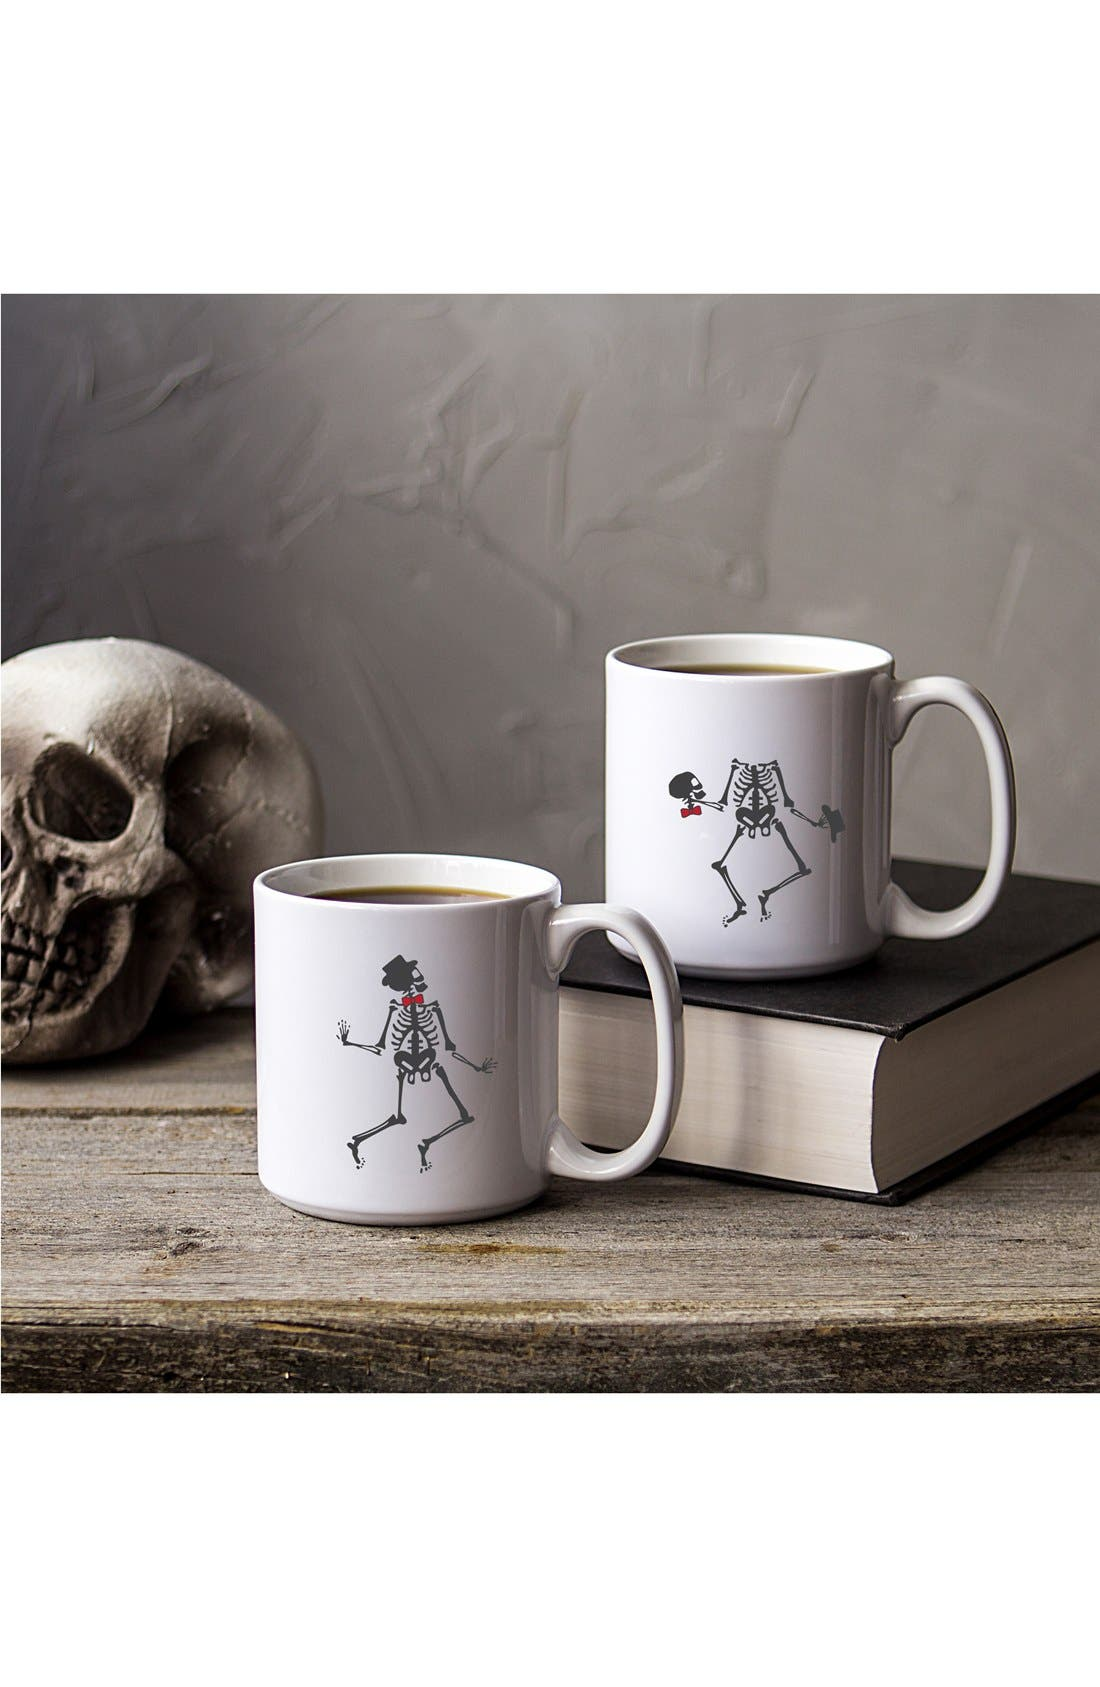 Cathy's Concepts 'Skeletons' Ceramic Coffee Mugs (Set of 2)